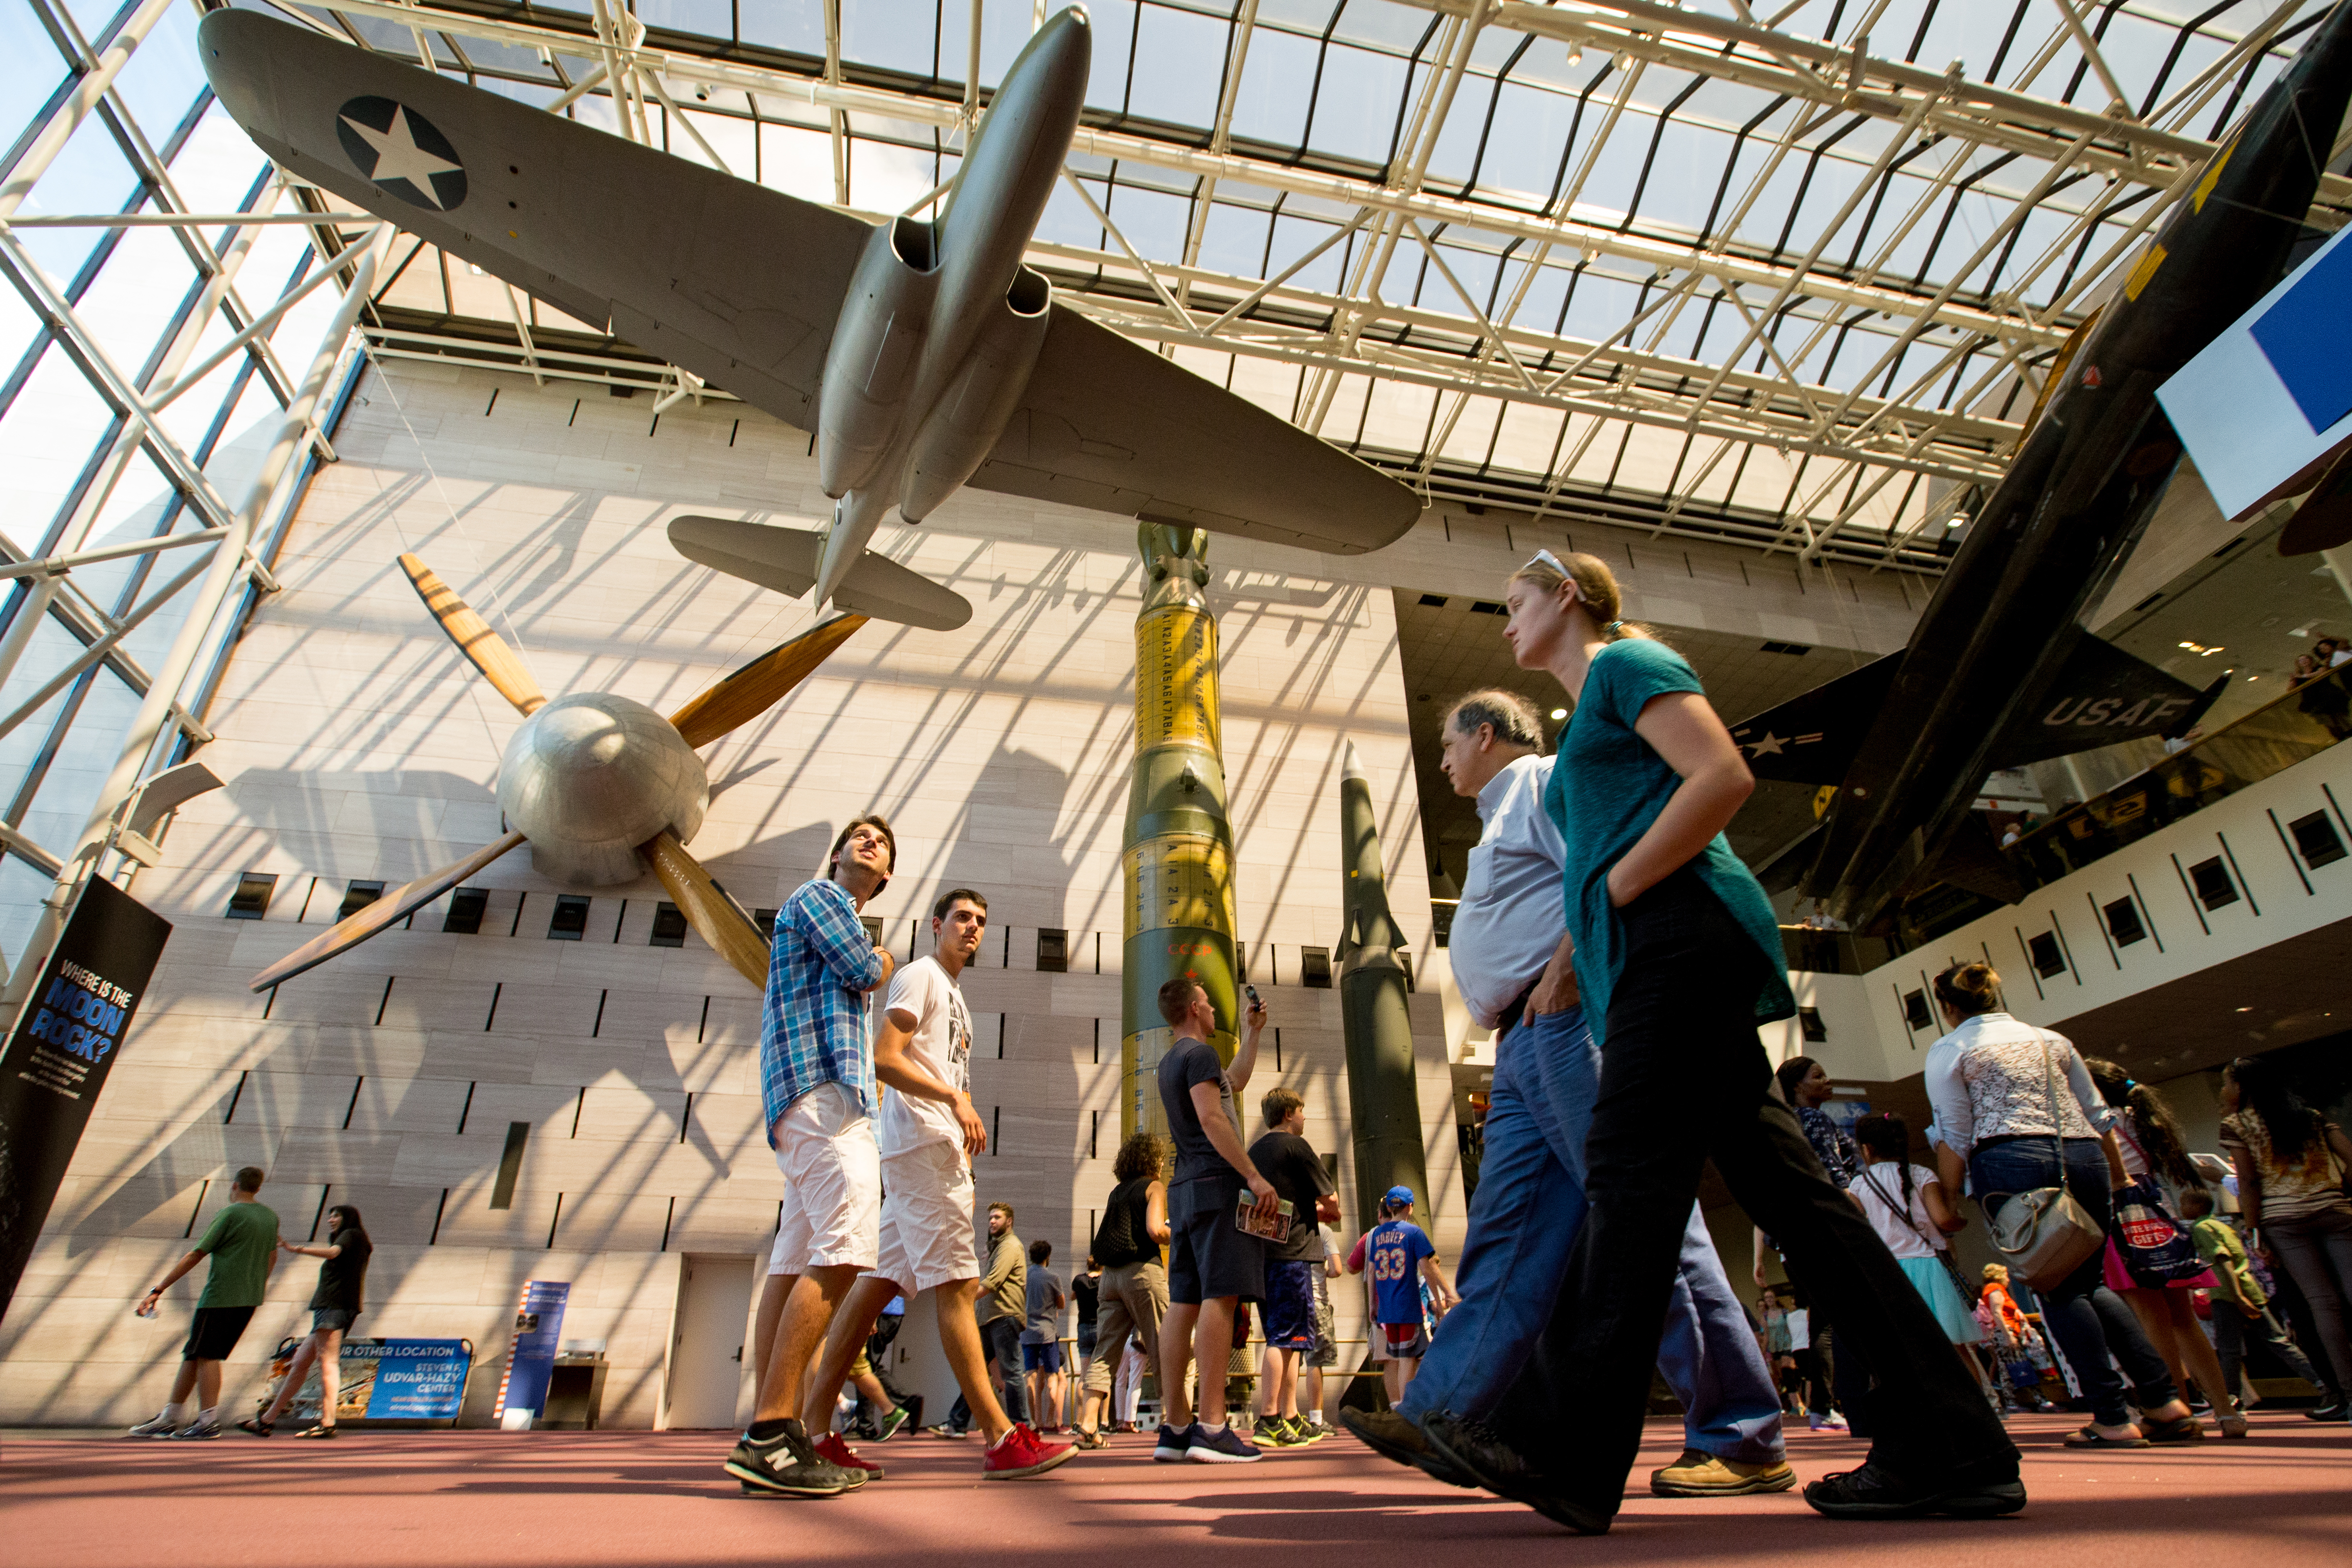 Air and Space tops list of most-visited museums in US